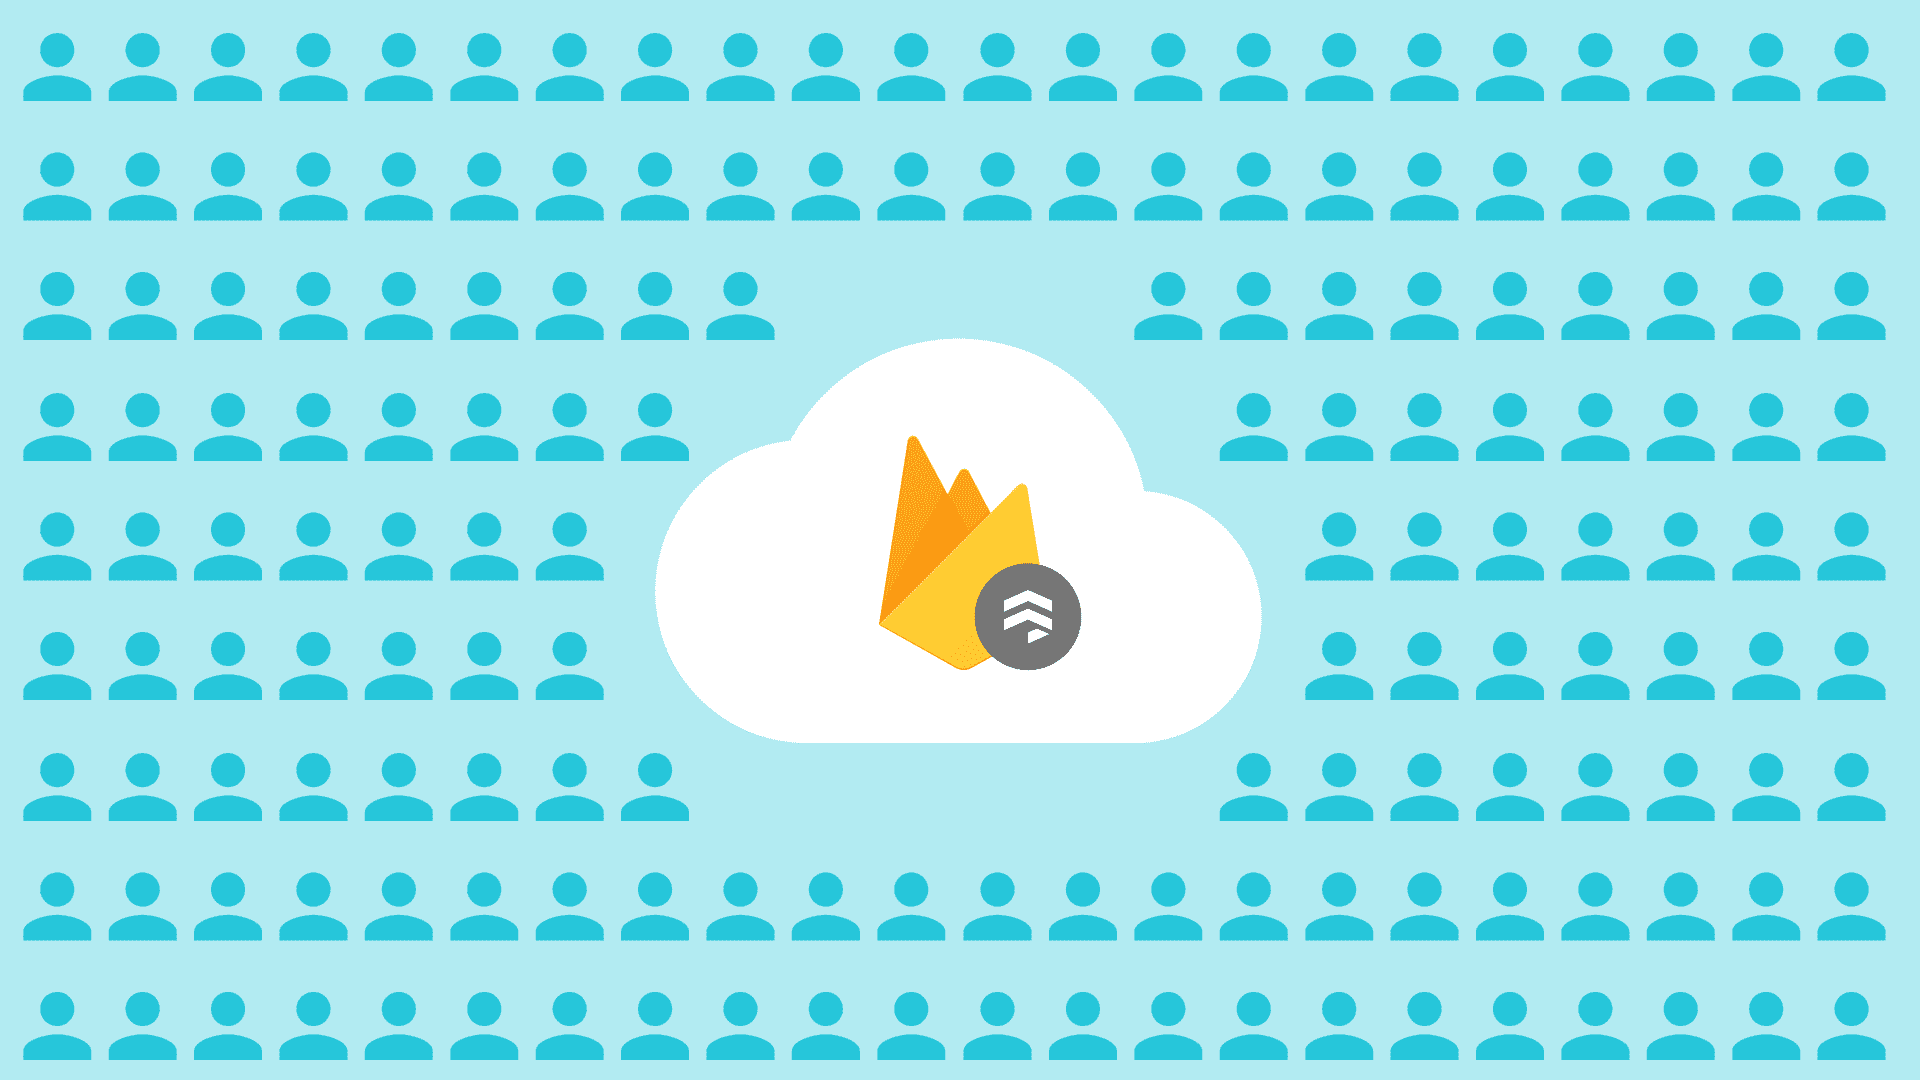 Illustration of firebase firestore logo and audience members